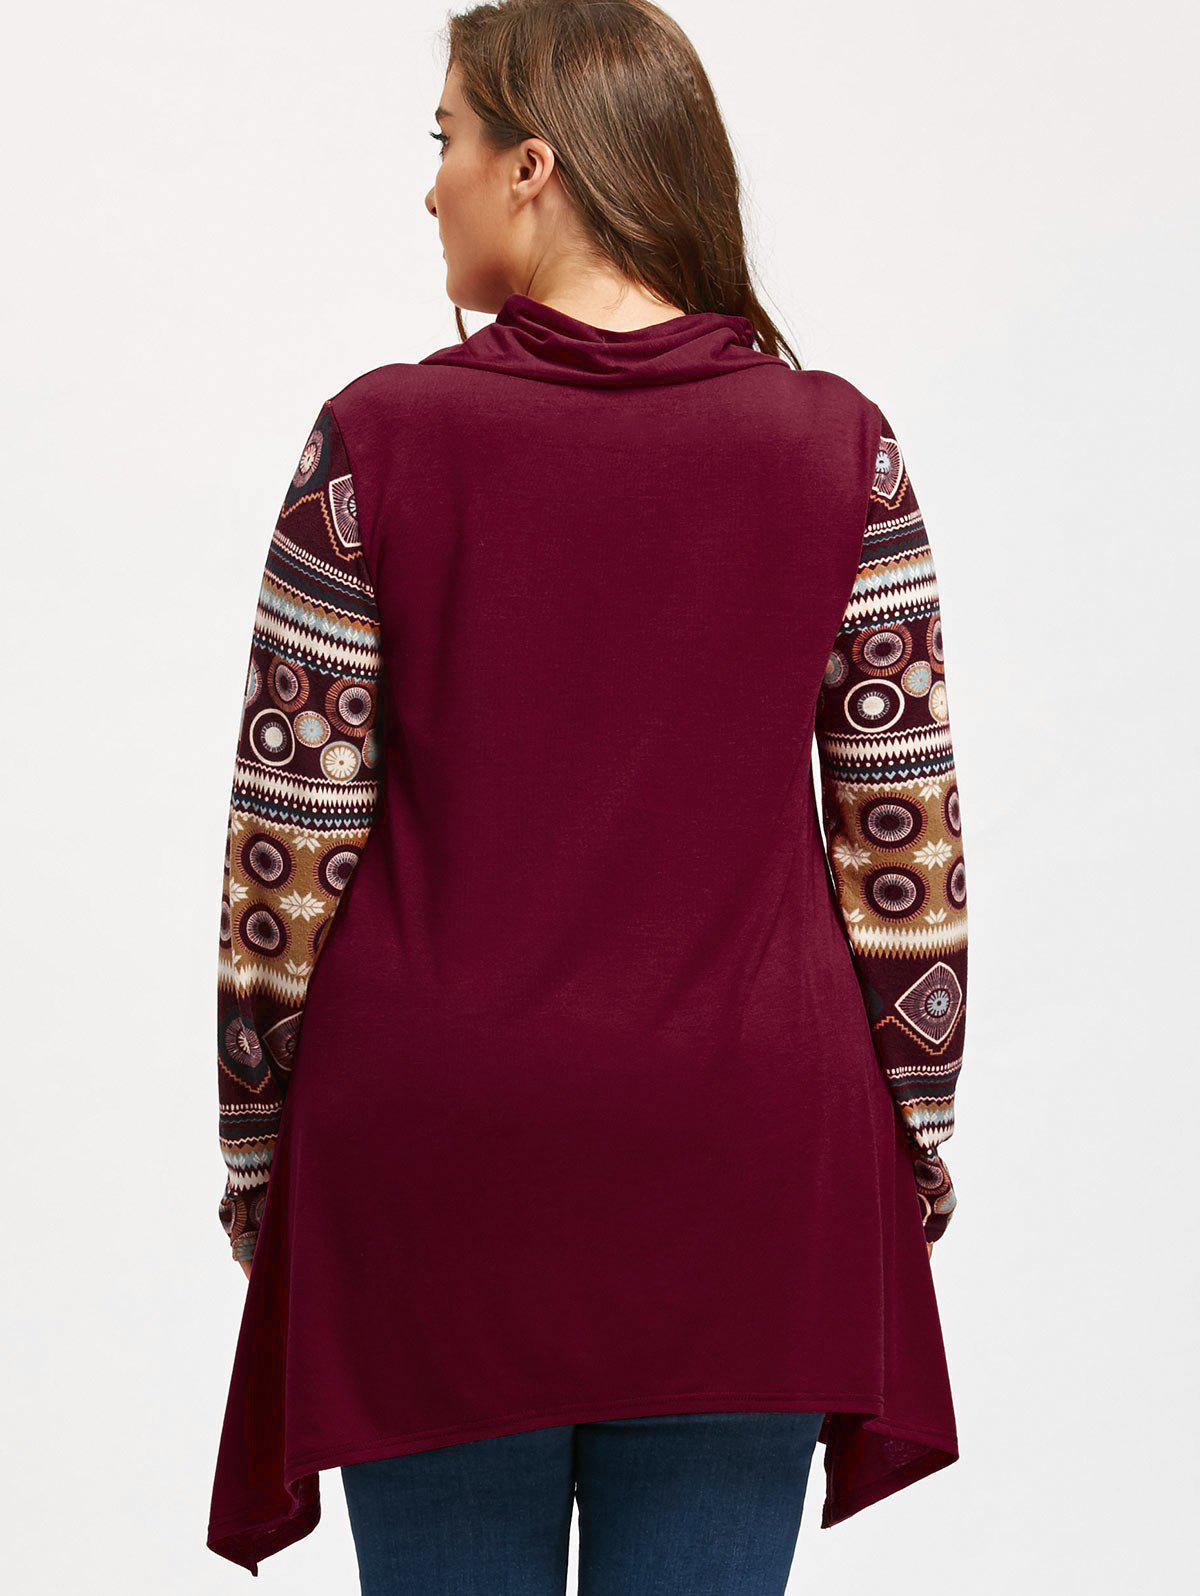 Heaps Collar Long Sleeve Plus Size Sharkbite T-shirt - WINE RED 2XL